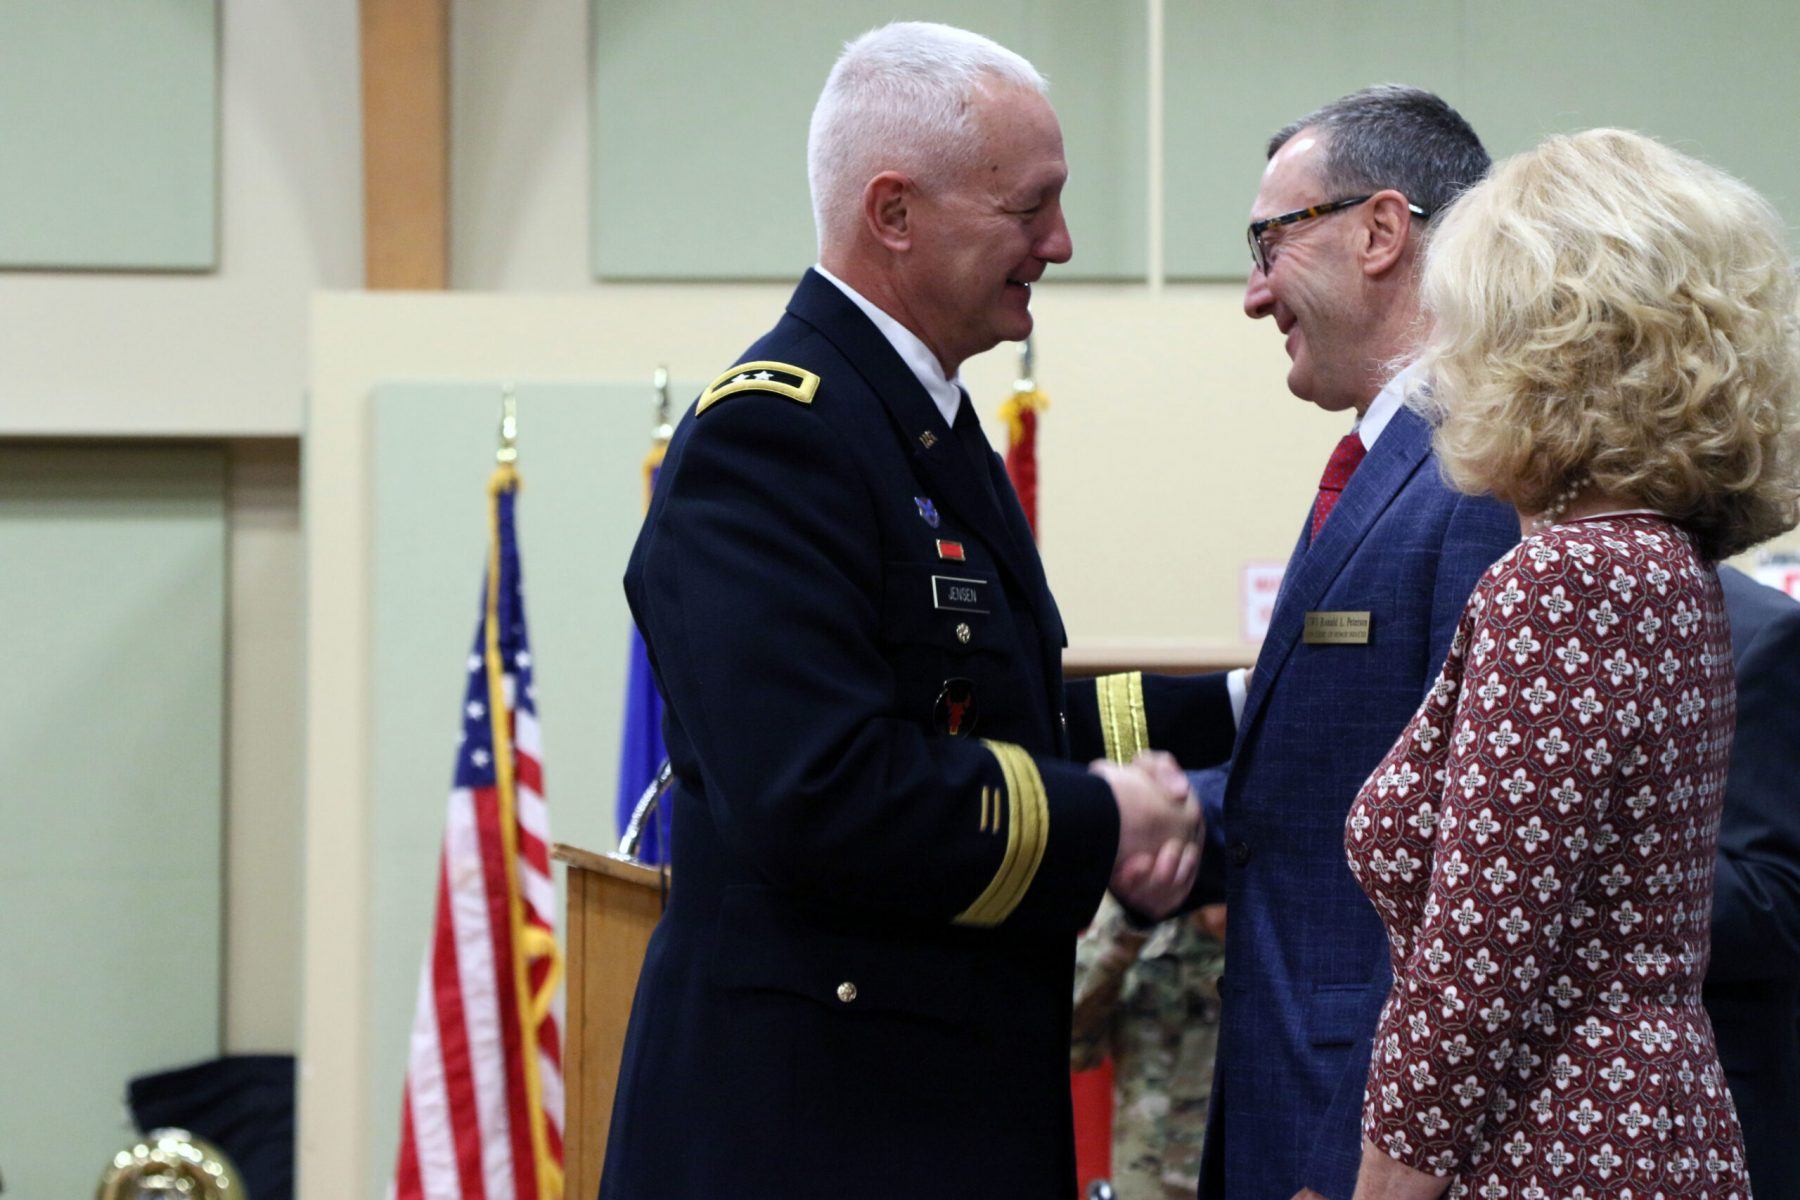 Chief Warrant Officer 5 (Ret.) Ronald L. Peterson shakes the hand of Maj. Gen. Jon Jensen, Minnesota National Guard Adjutant General, during the Court of Honor ceremony on October 6th 2019 on Camp Ripley.